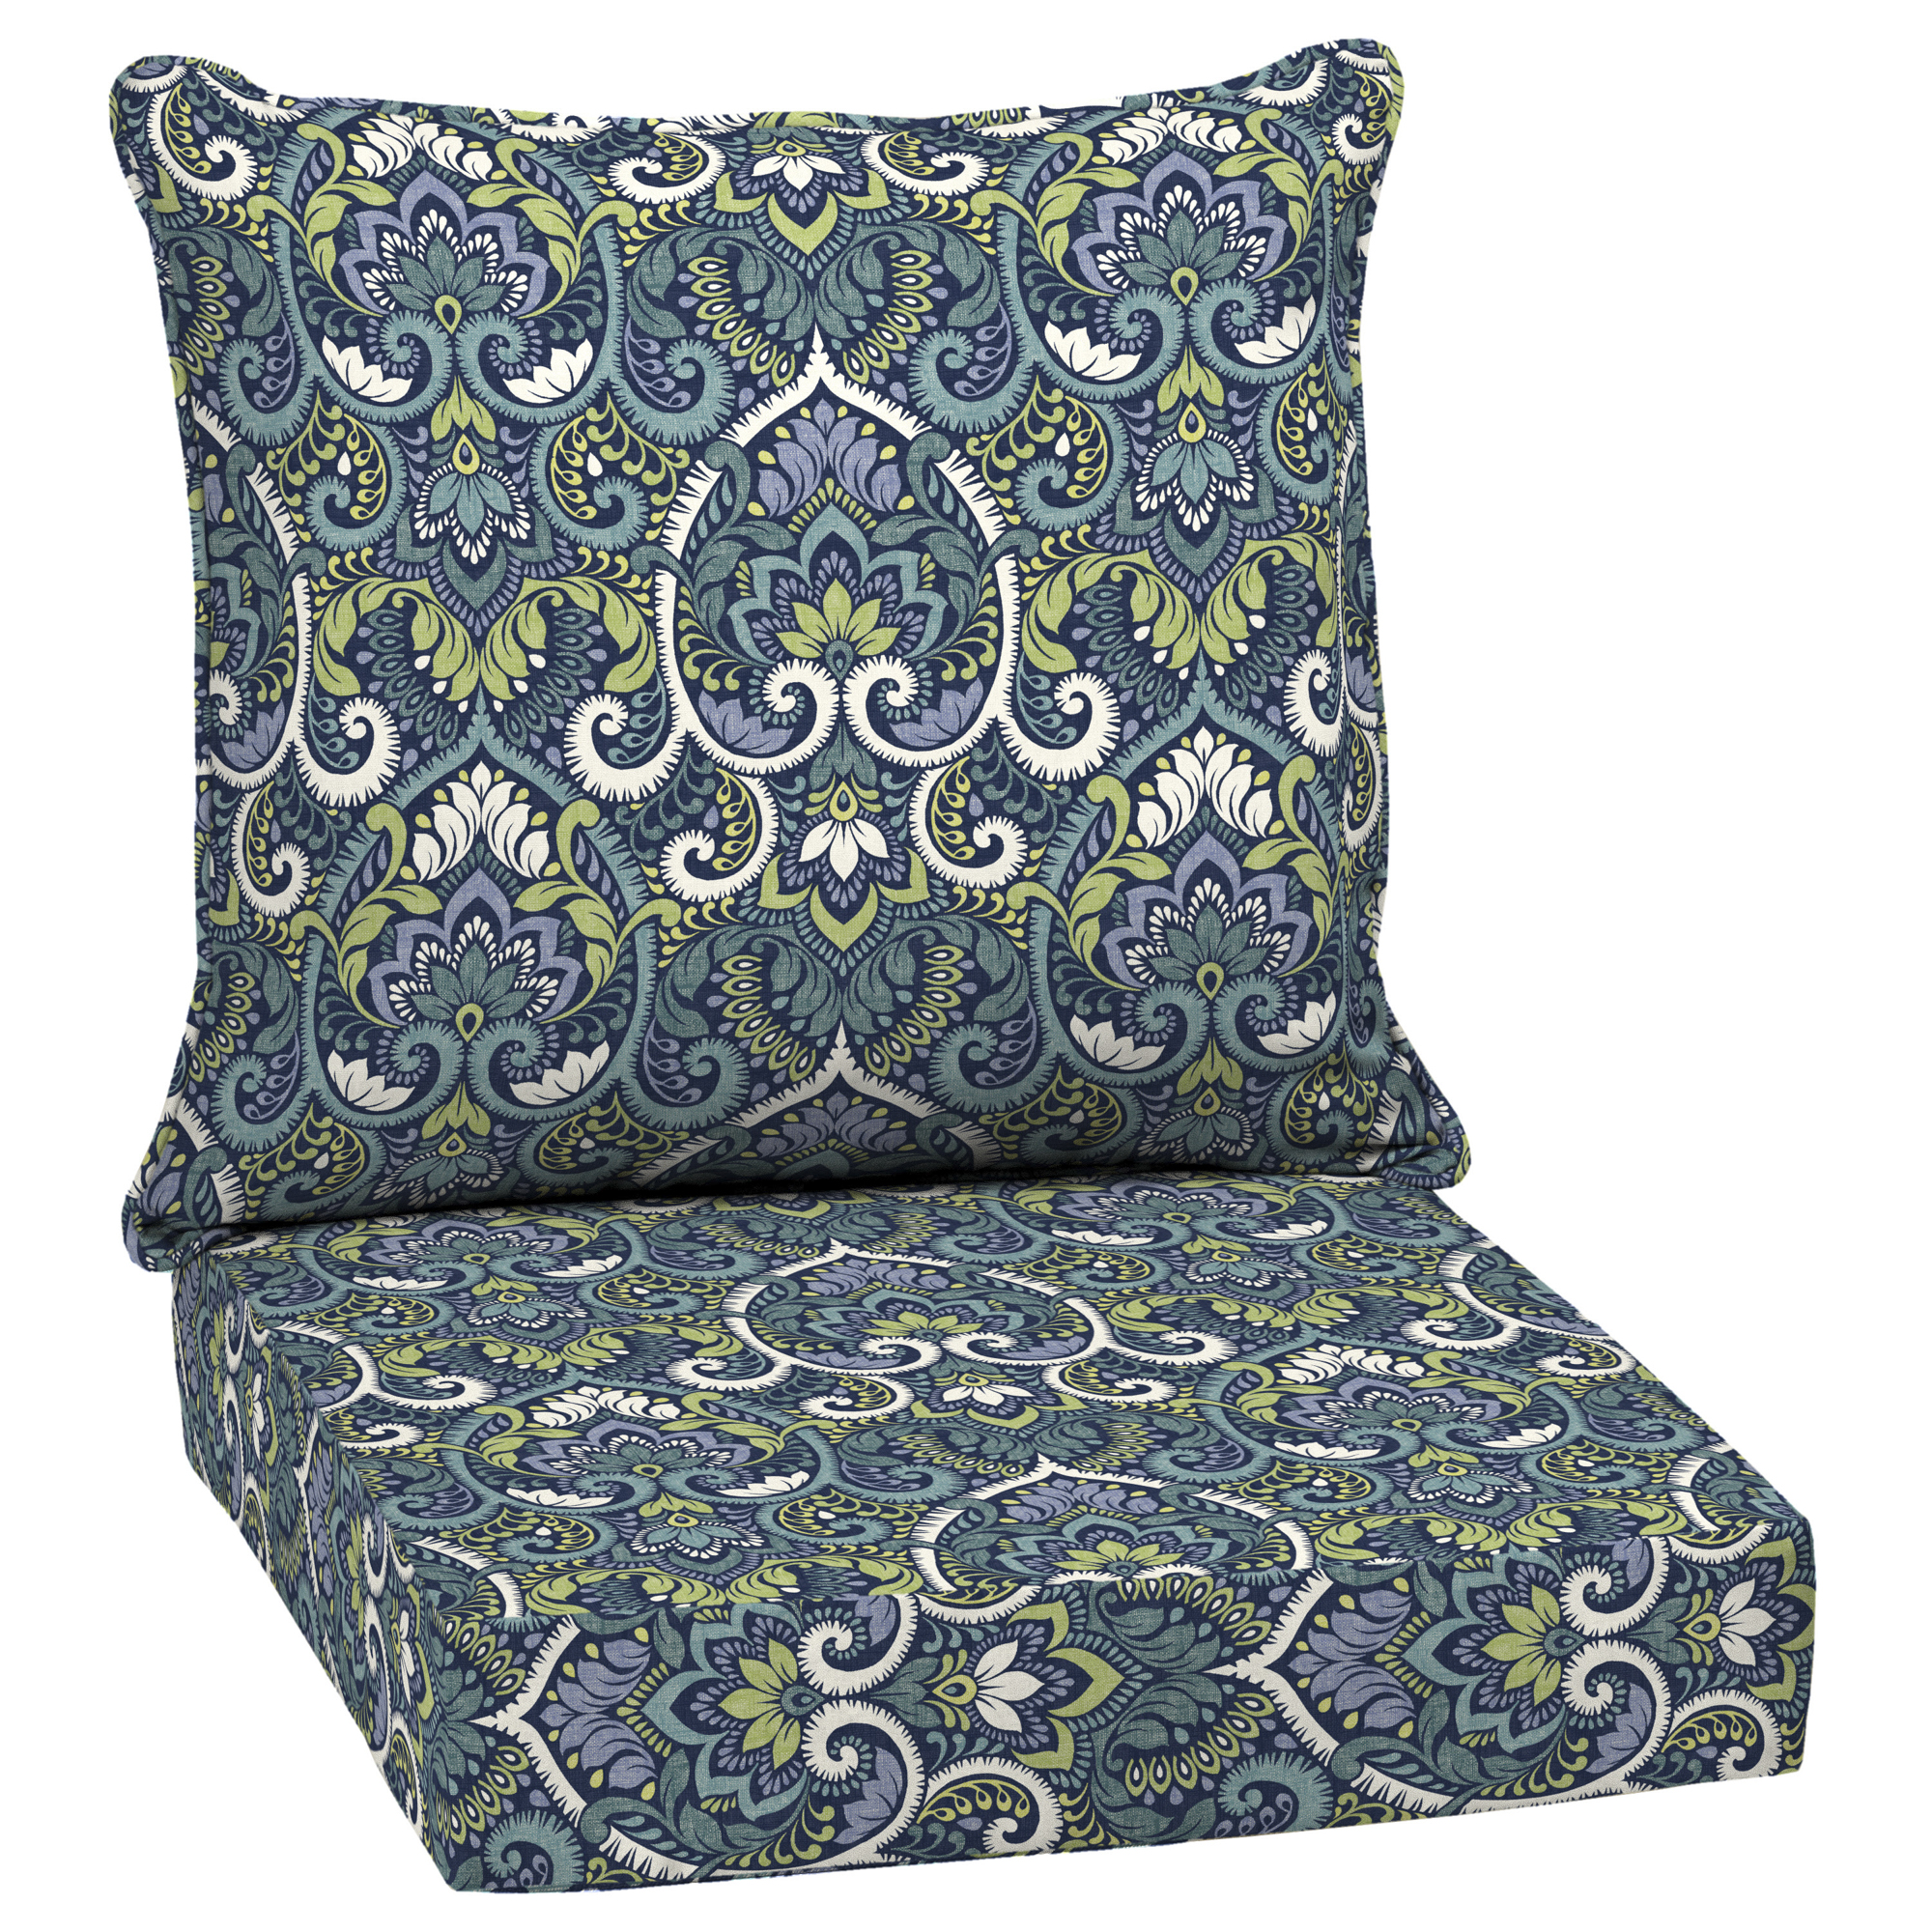 Arden Selections Sapphire Aurora Damask 46.5 x 24 in. Outdoor Deep Seat Cushion Set